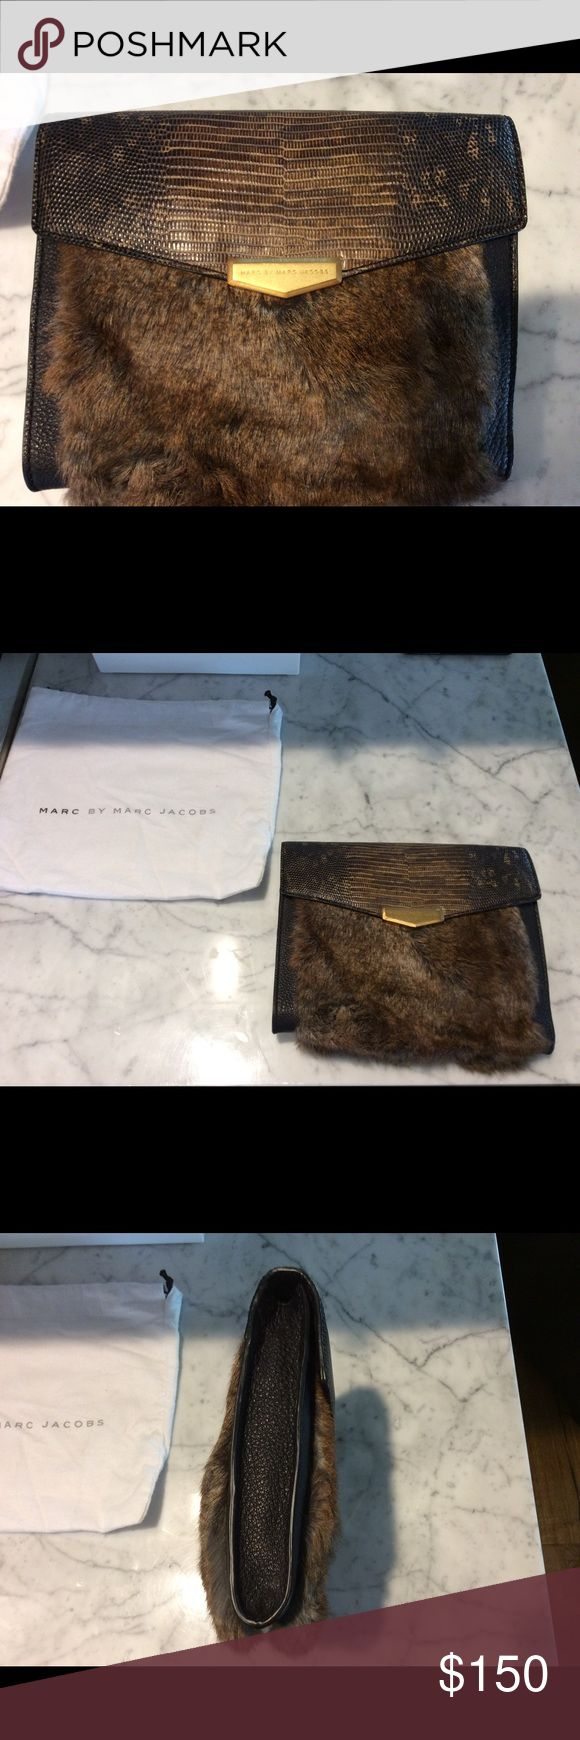 Marc by Marc Jacobs fur clutch Brand new never been used Marc by Marc Jacobs clutch. Tags and everything Marc by Marc Jacobs Bags Clutches & Wristlets